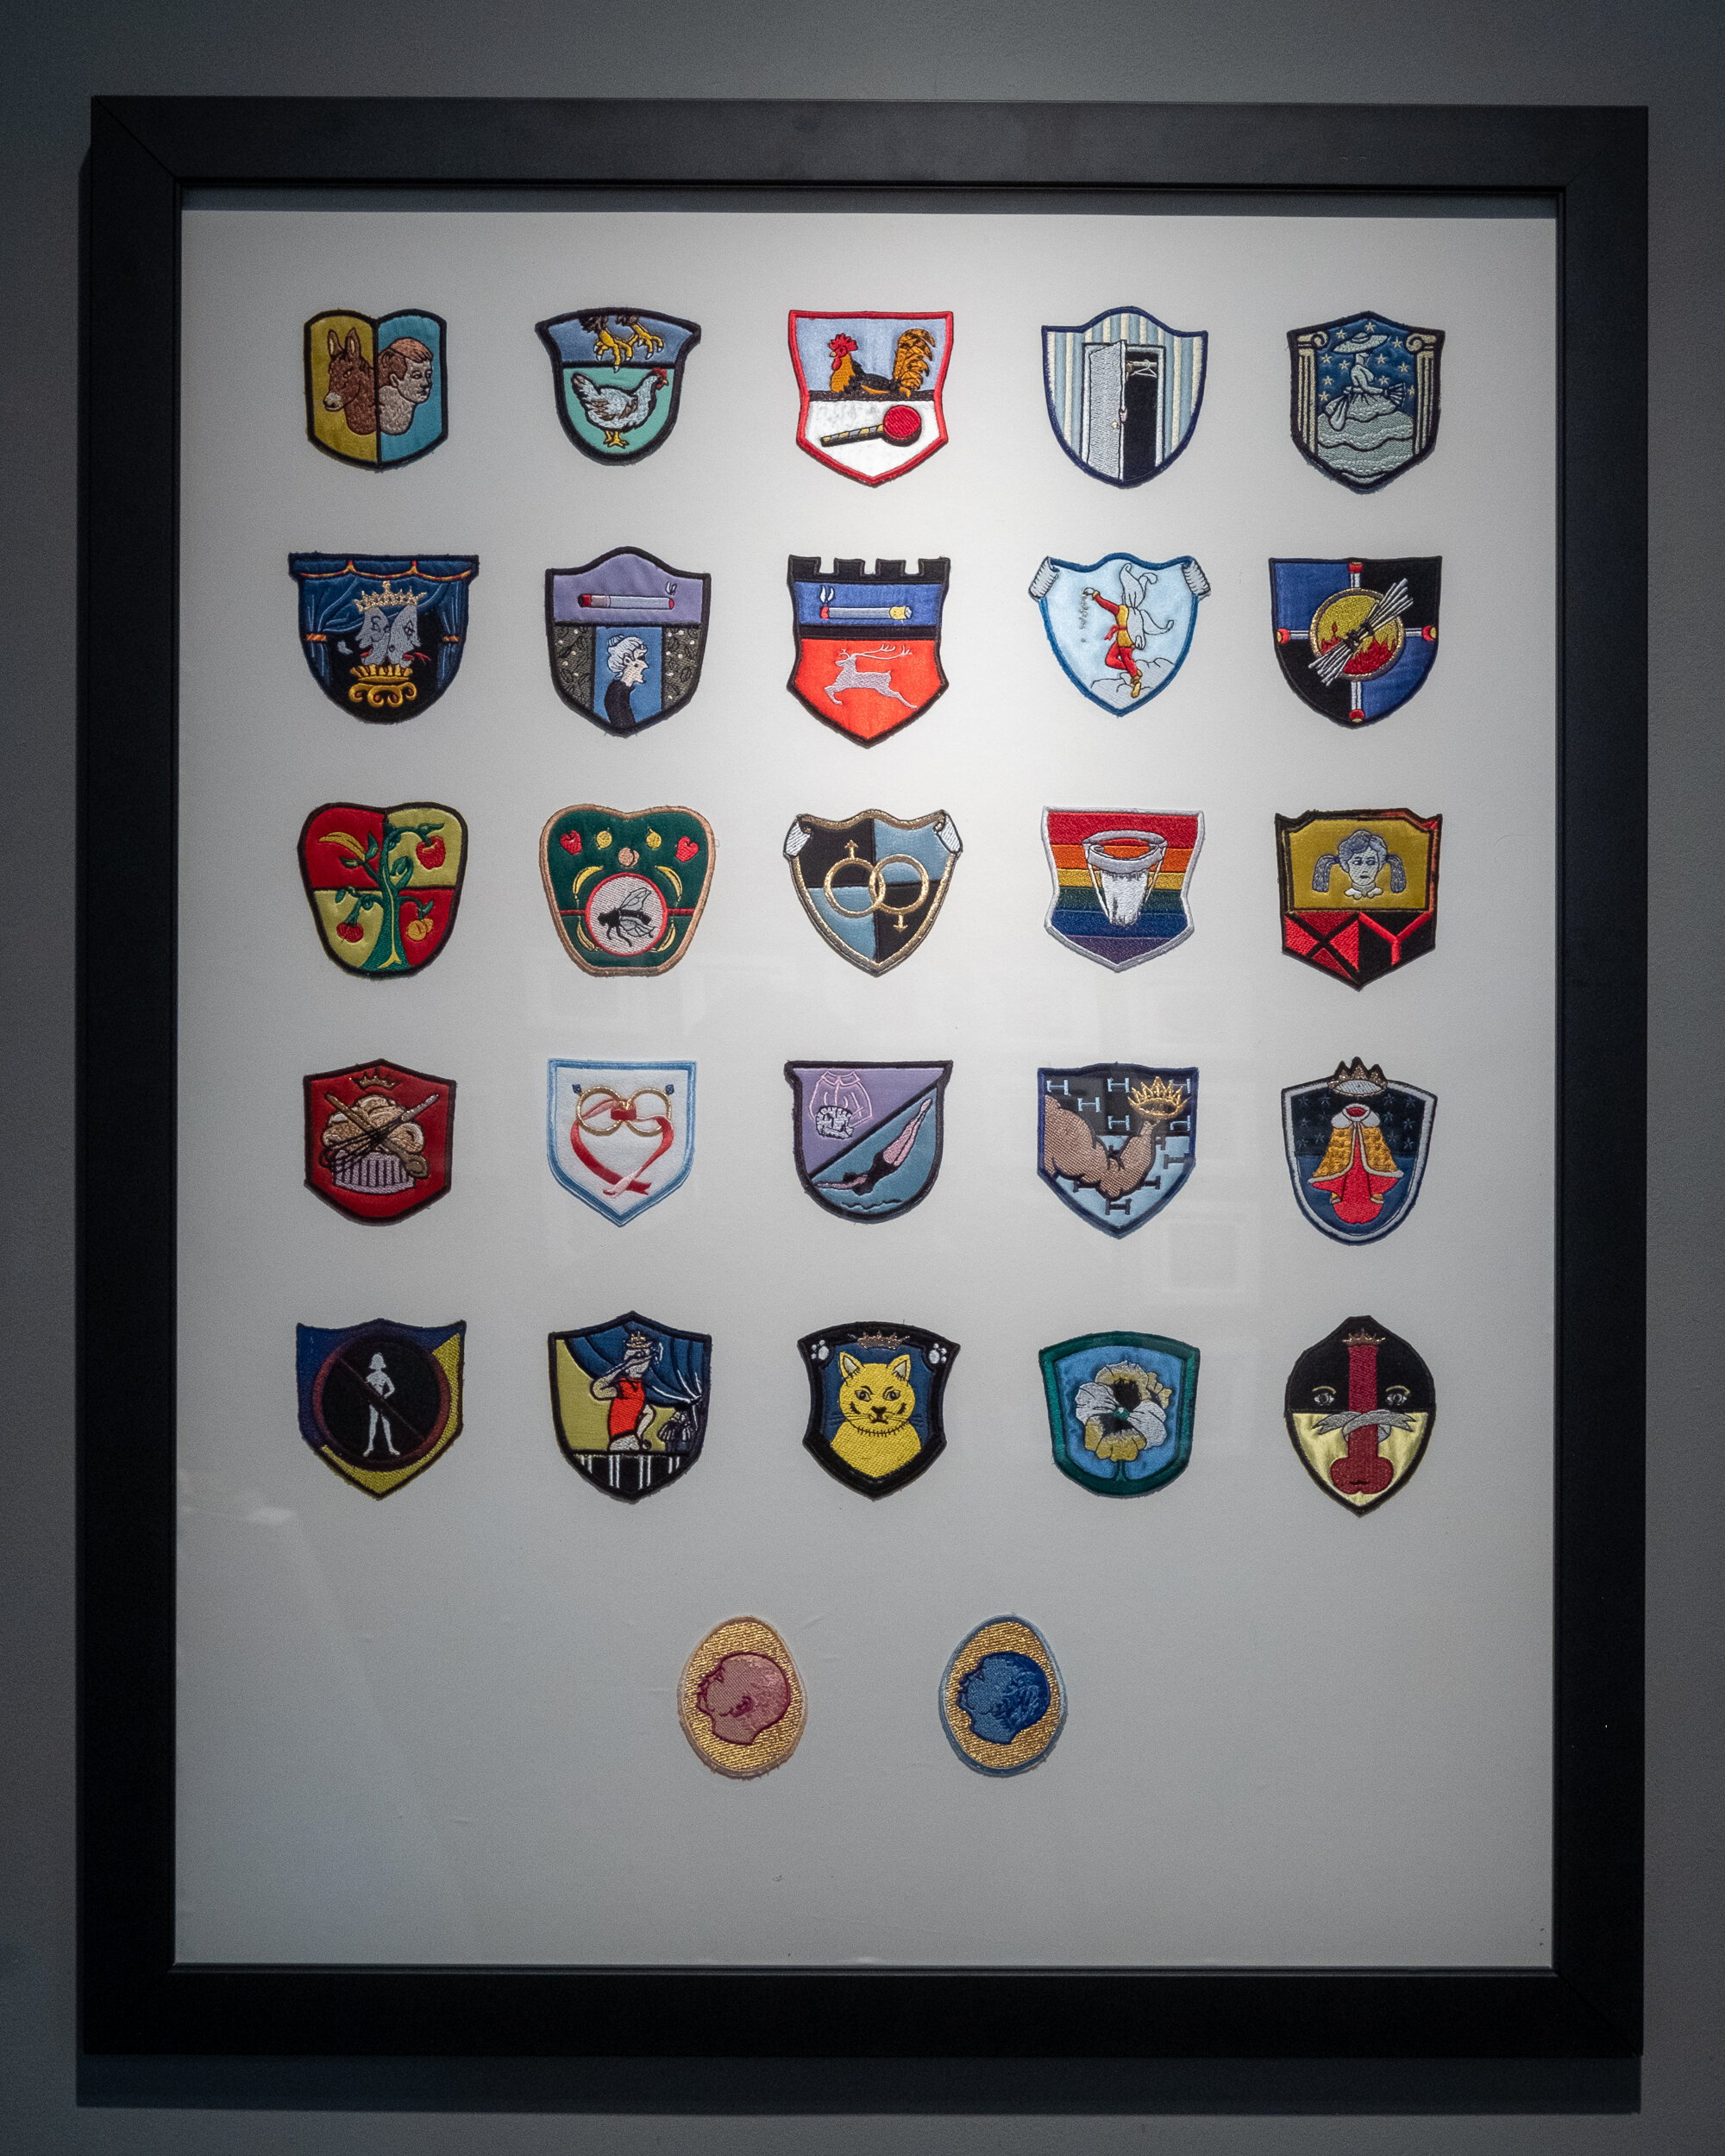 18  Gay Merit Badges      framed group of gay merit badges produced in Italy 33 x 31.25 inches LJA 262G